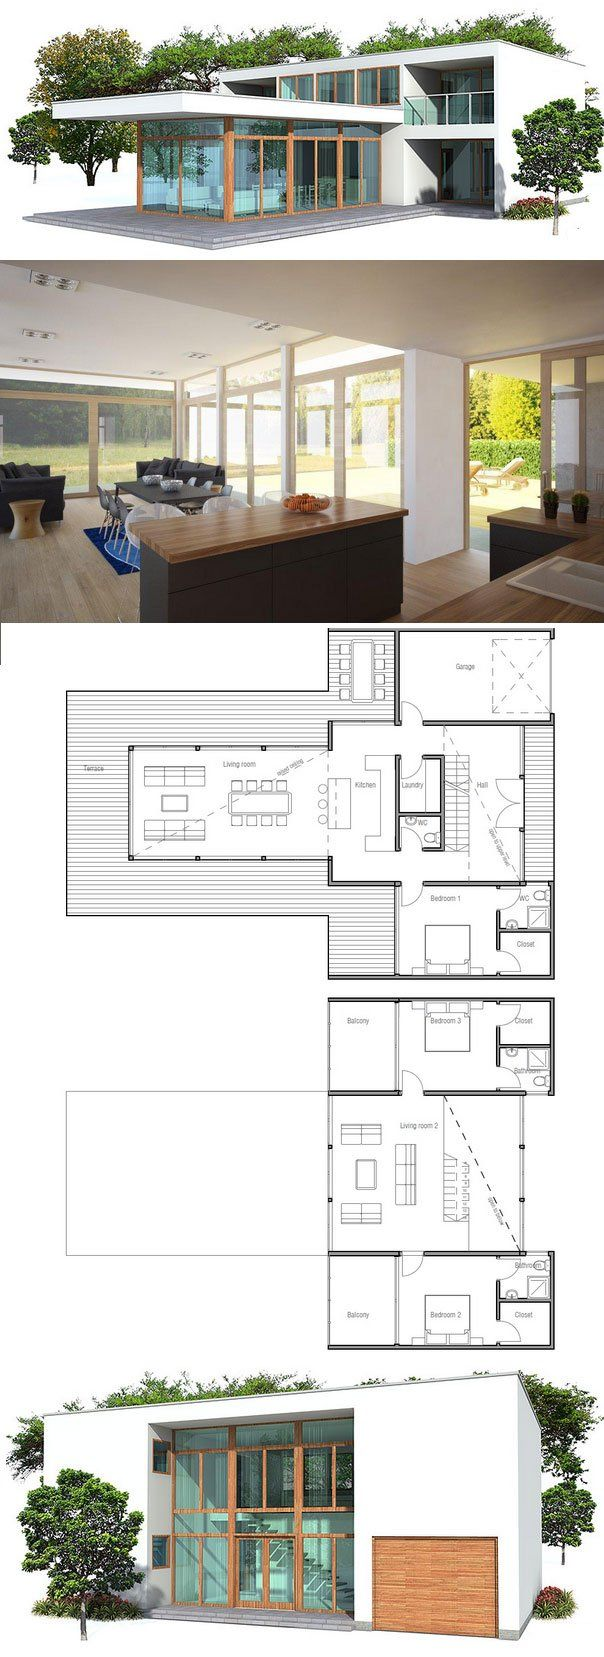 1000+ ideas about Modern House Plans on Pinterest House plans ... - ^